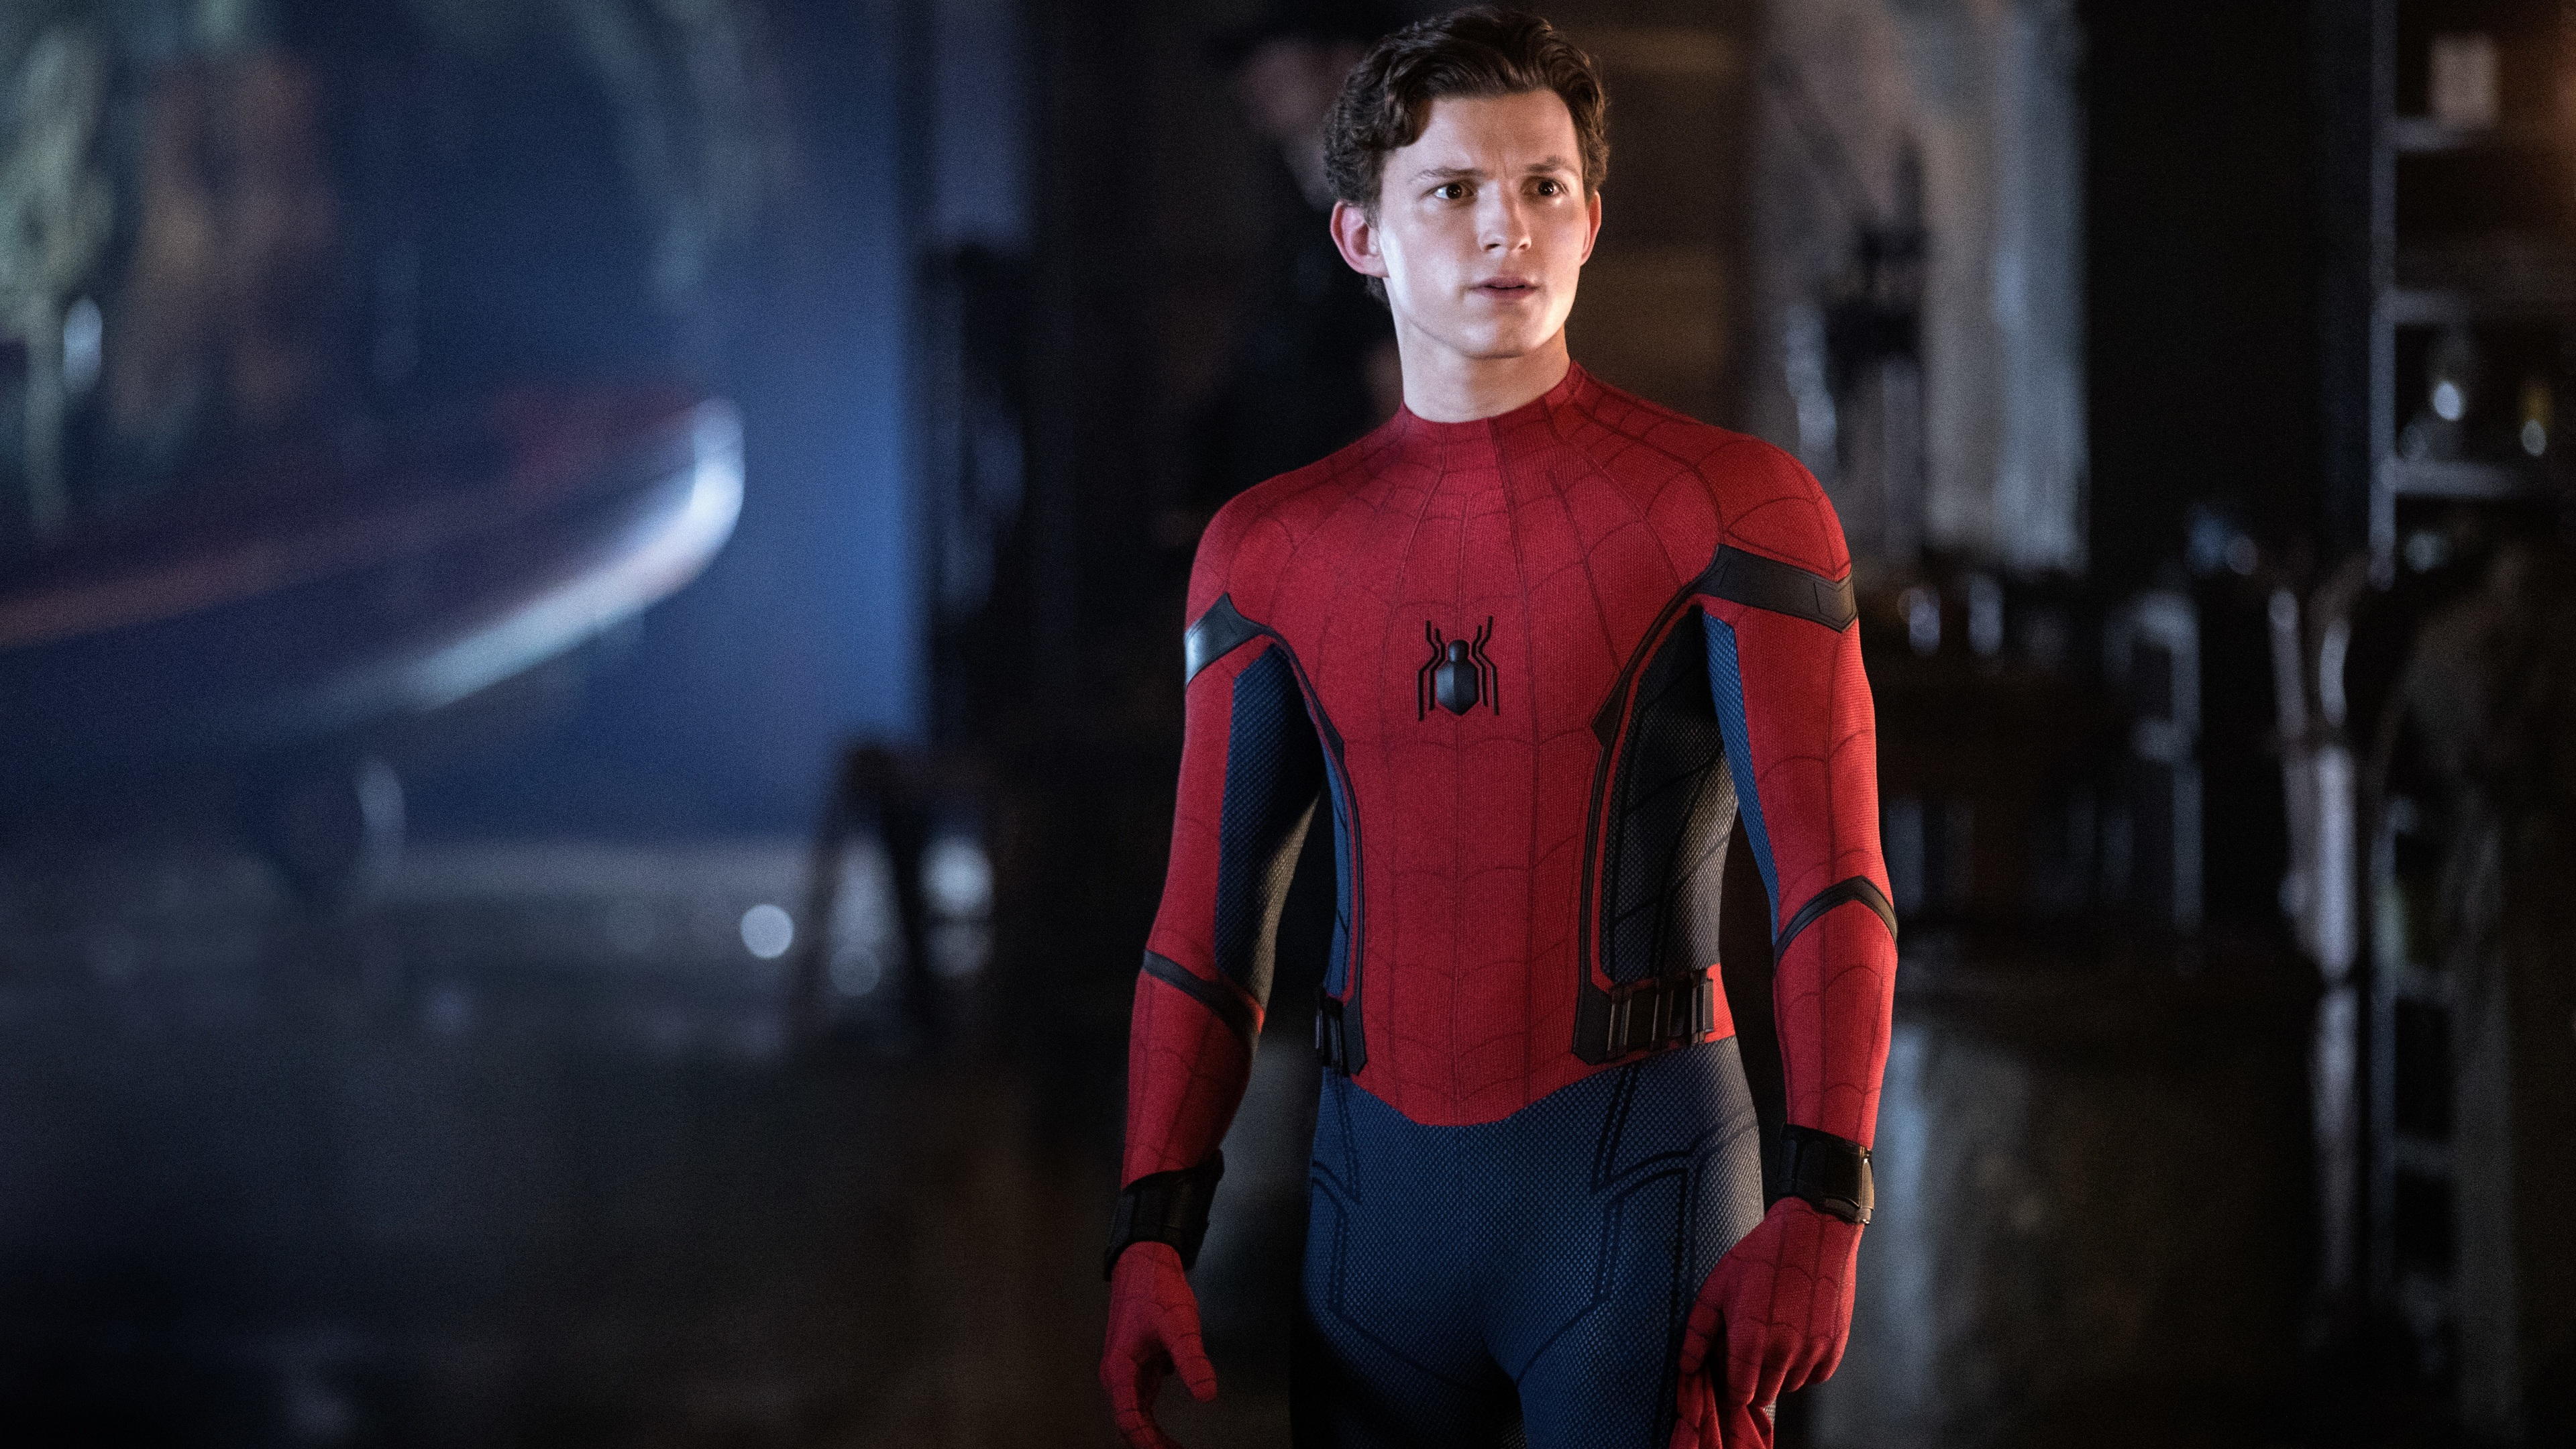 spiderman far from home 1562107080 - Spiderman Far From Home - tom holland wallpapers, superheroes wallpapers, spiderman wallpapers, spiderman far from home wallpapers, movies wallpapers, hd-wallpapers, 5k wallpapers, 4k-wallpapers, 2019 movies wallpapers